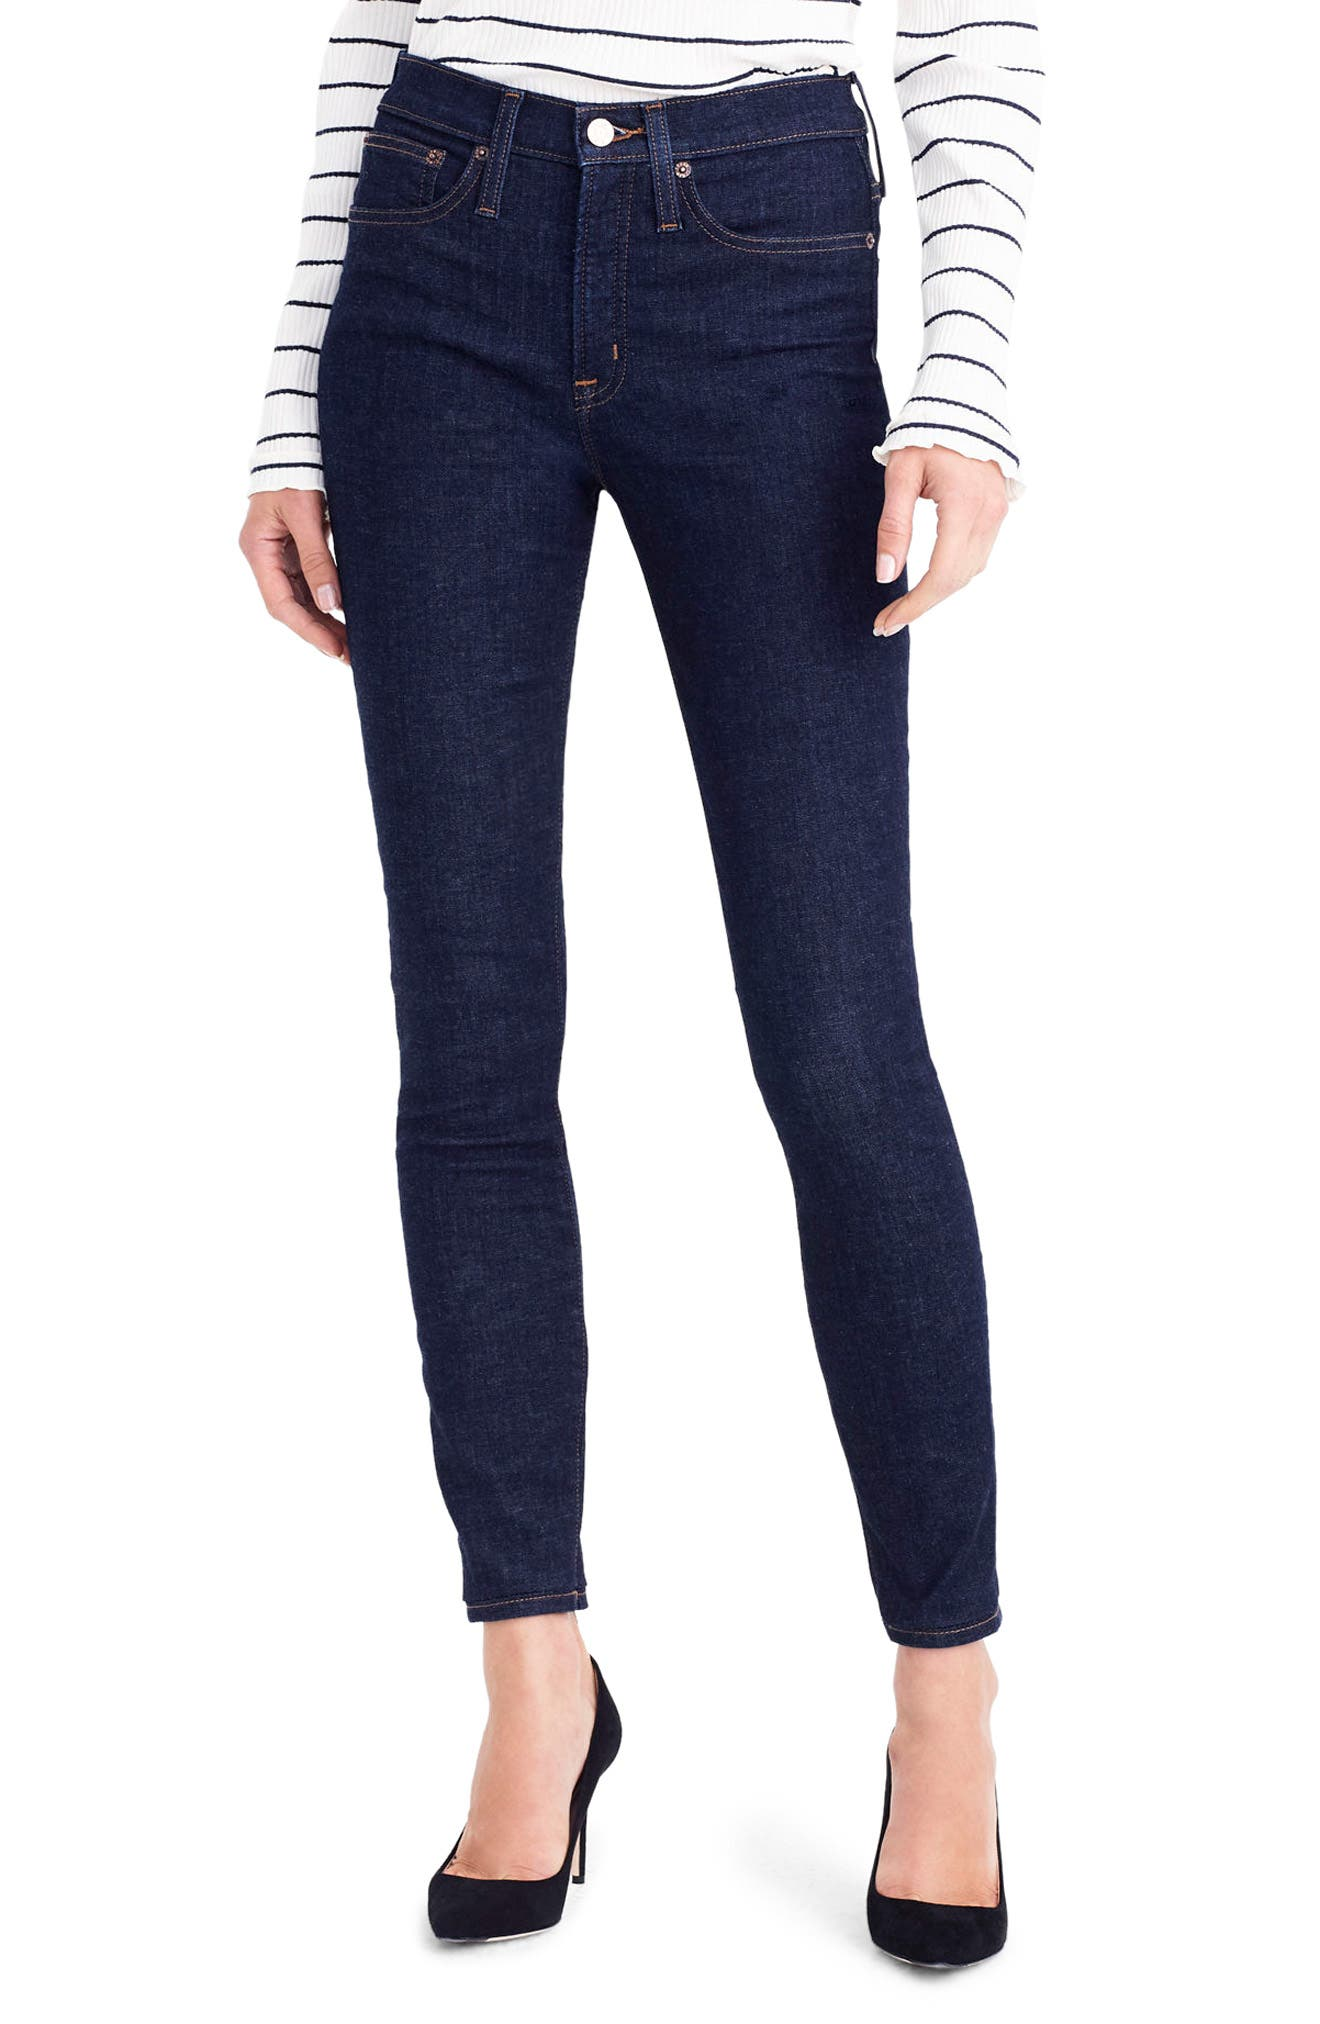 Main Image - J.Crew Toothpick High Rise Jeans (Classic Rinse)